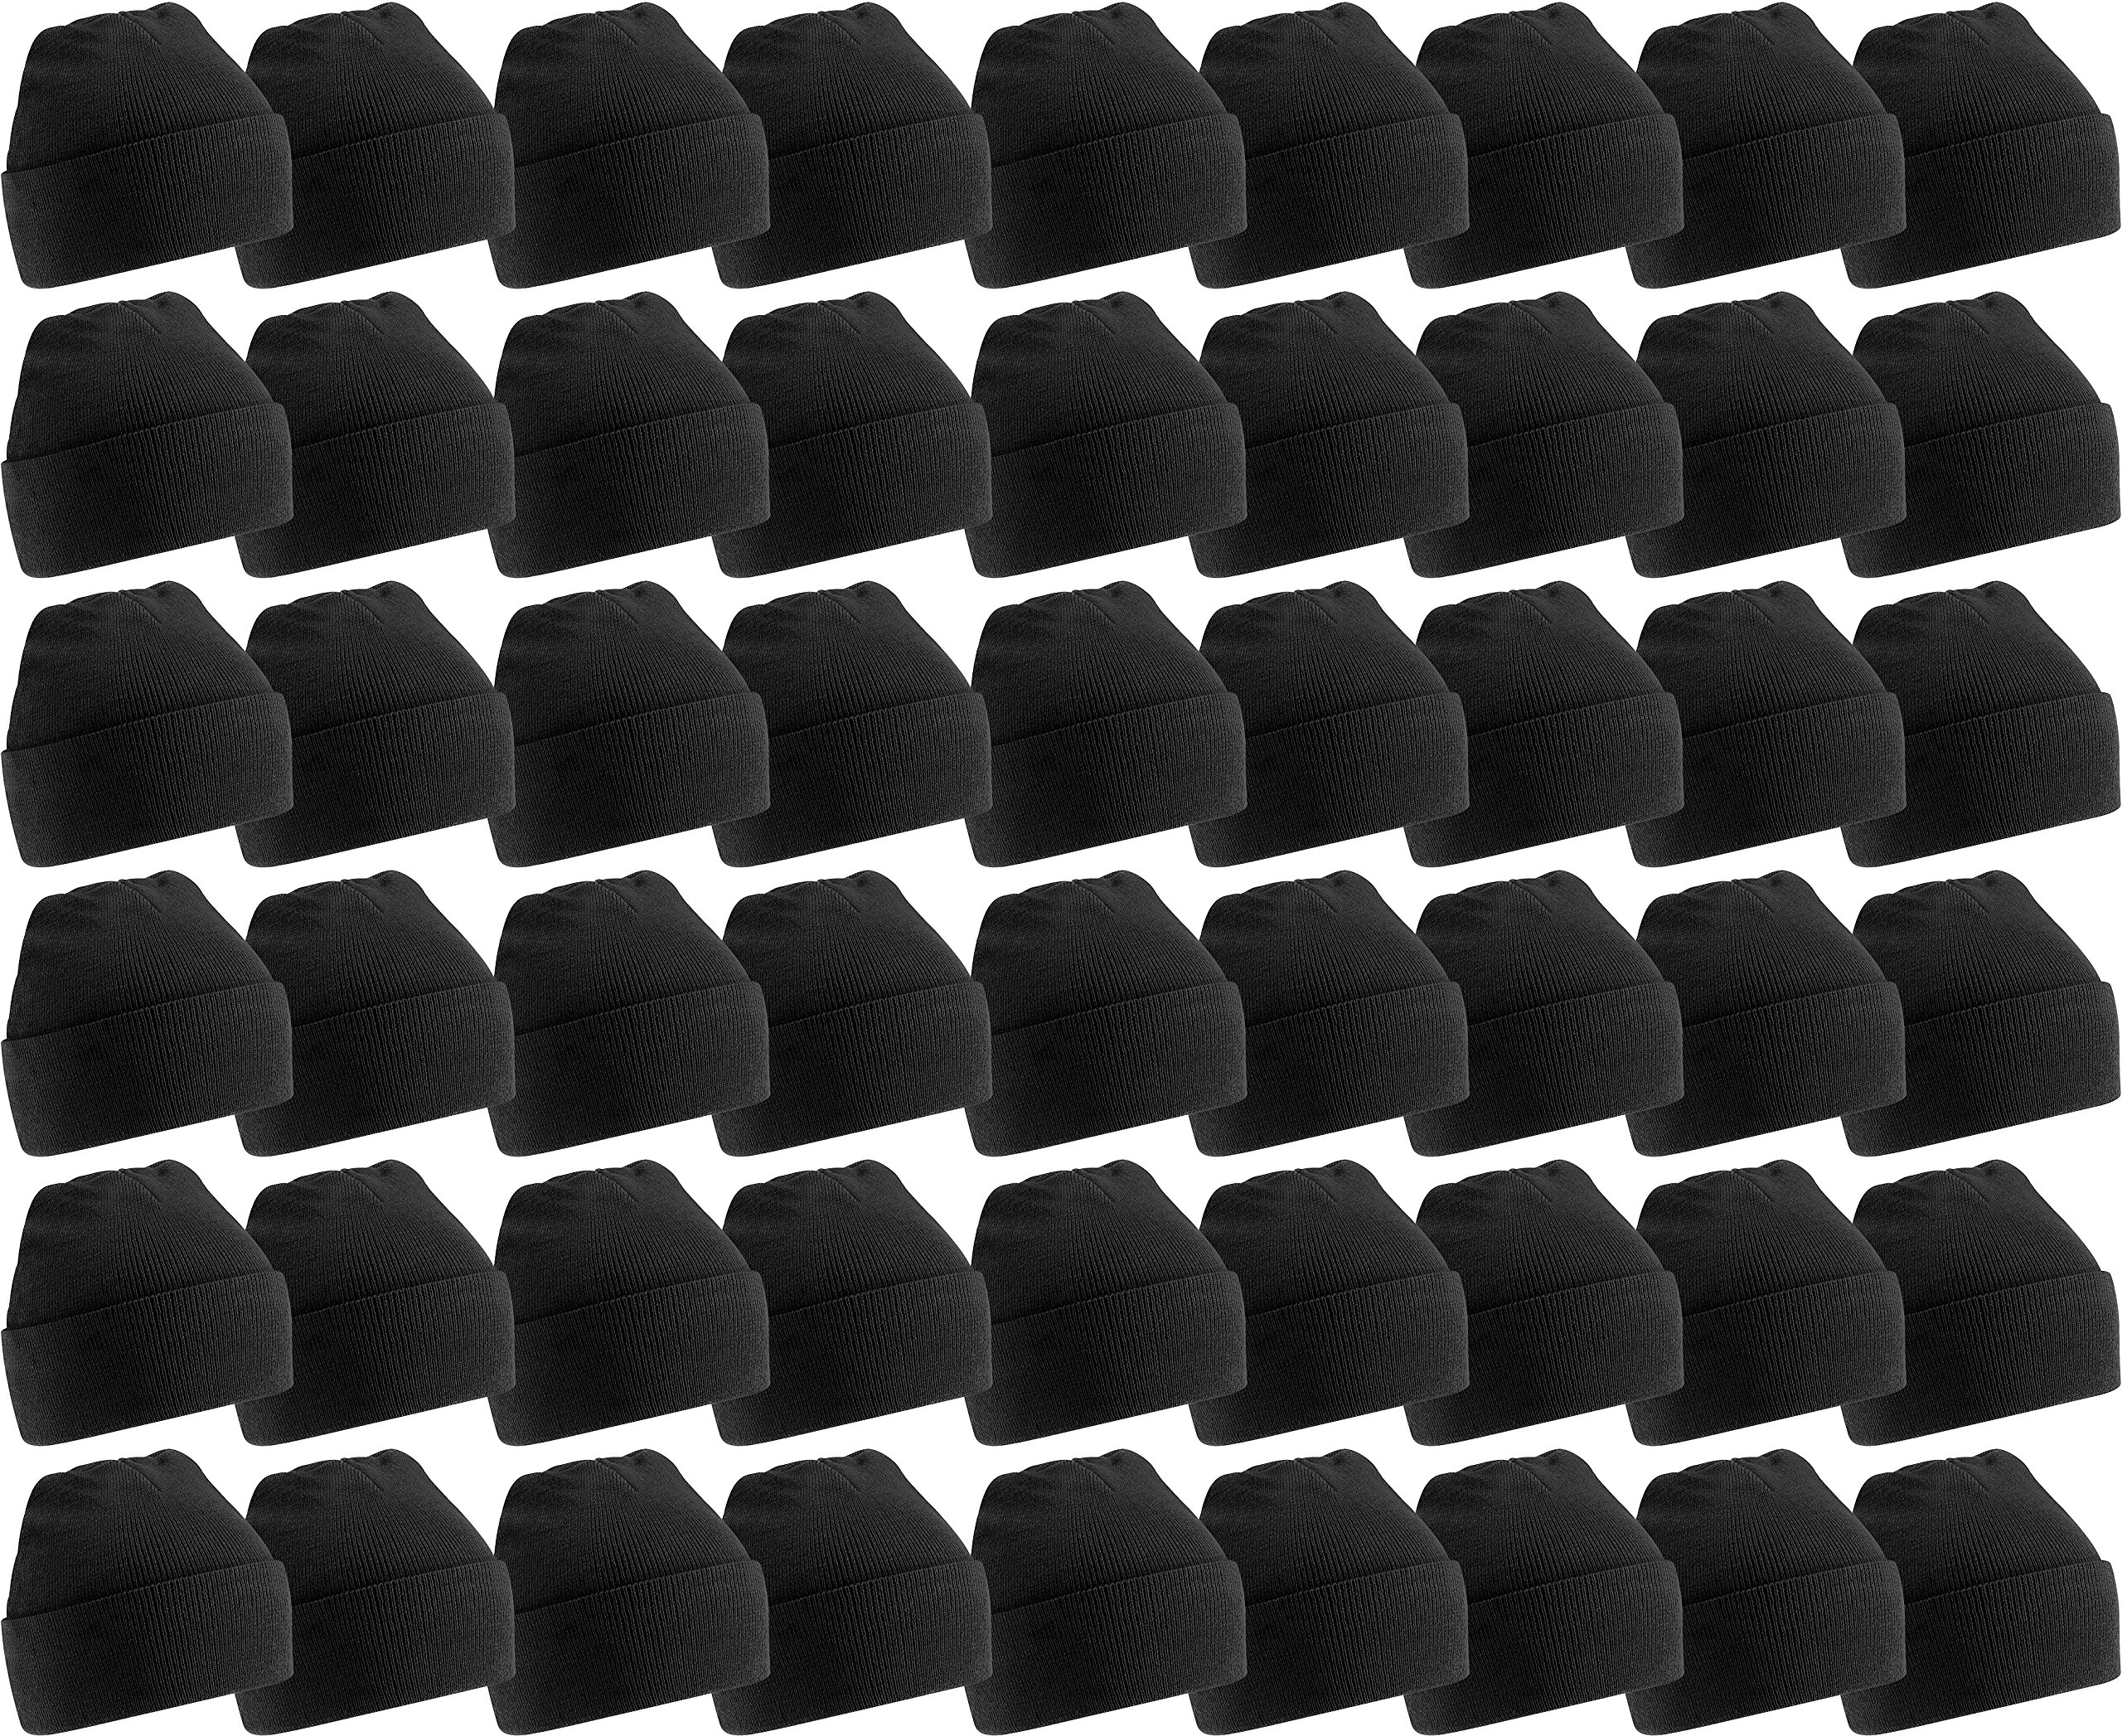 Yacht & Smith Mens Womens Warm Winter Hats in Assorted Colors, Mens Womens Unisex (60 Pack Black A) by Yacht & Smith